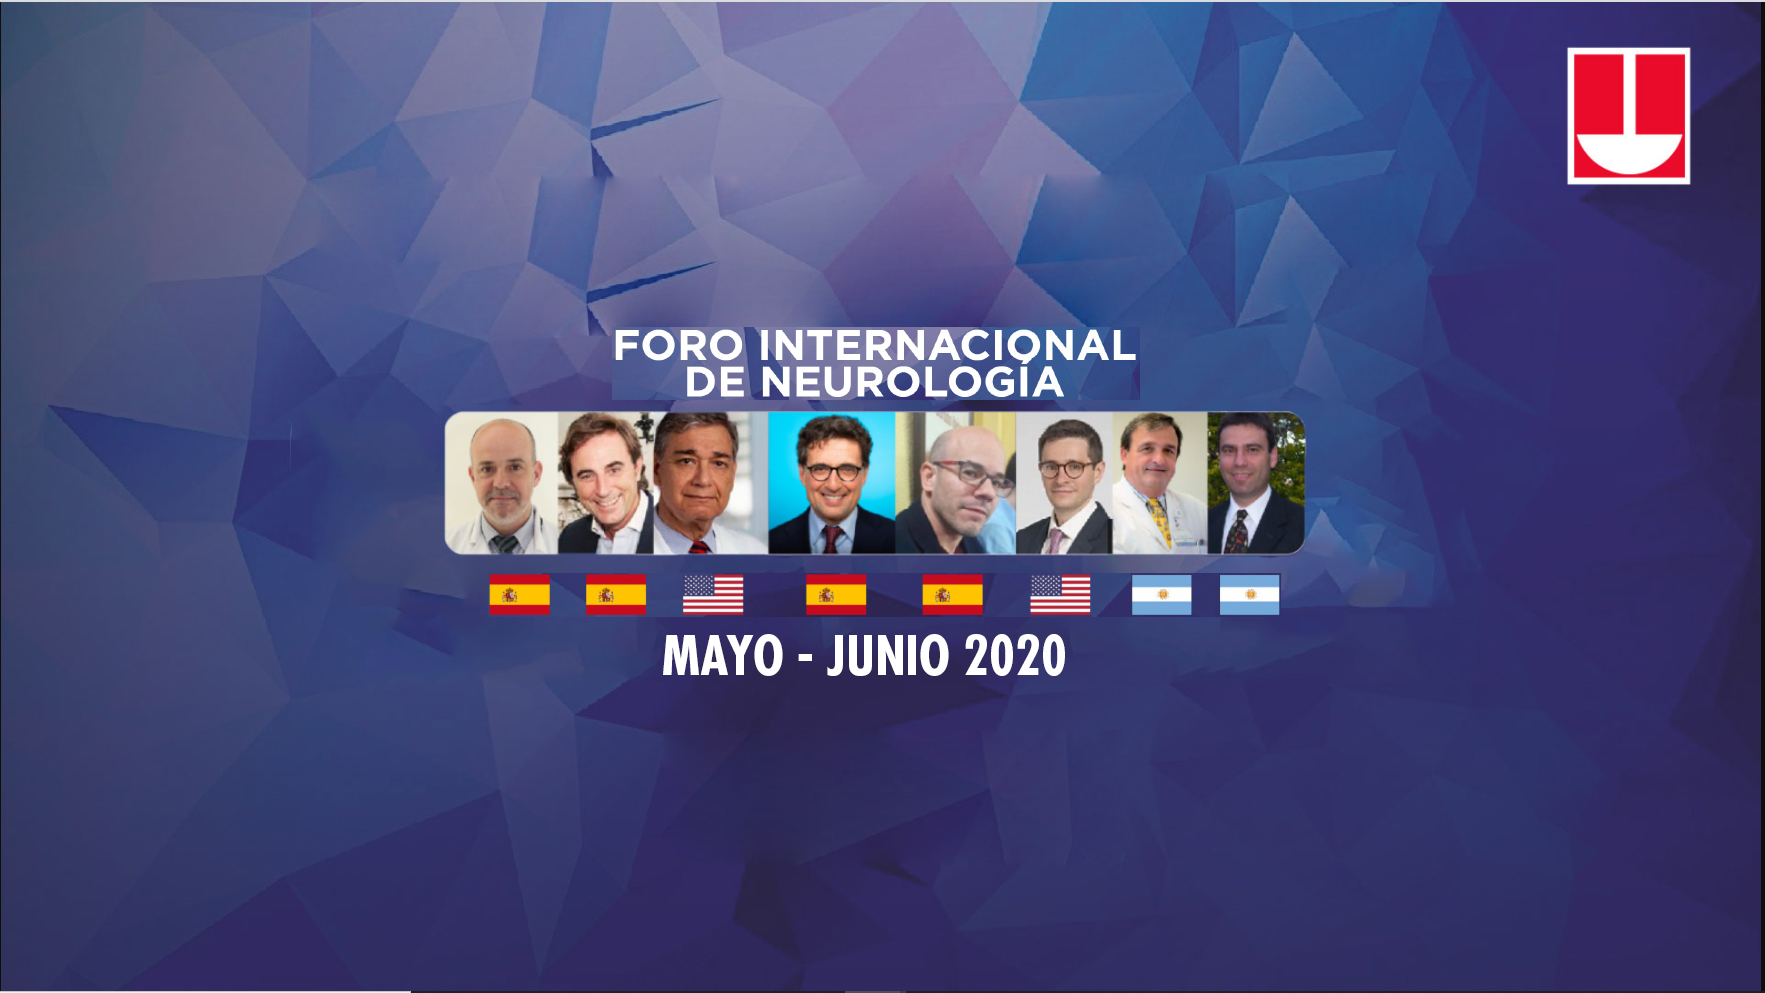 Foro Internacional de Neurociencias 2020